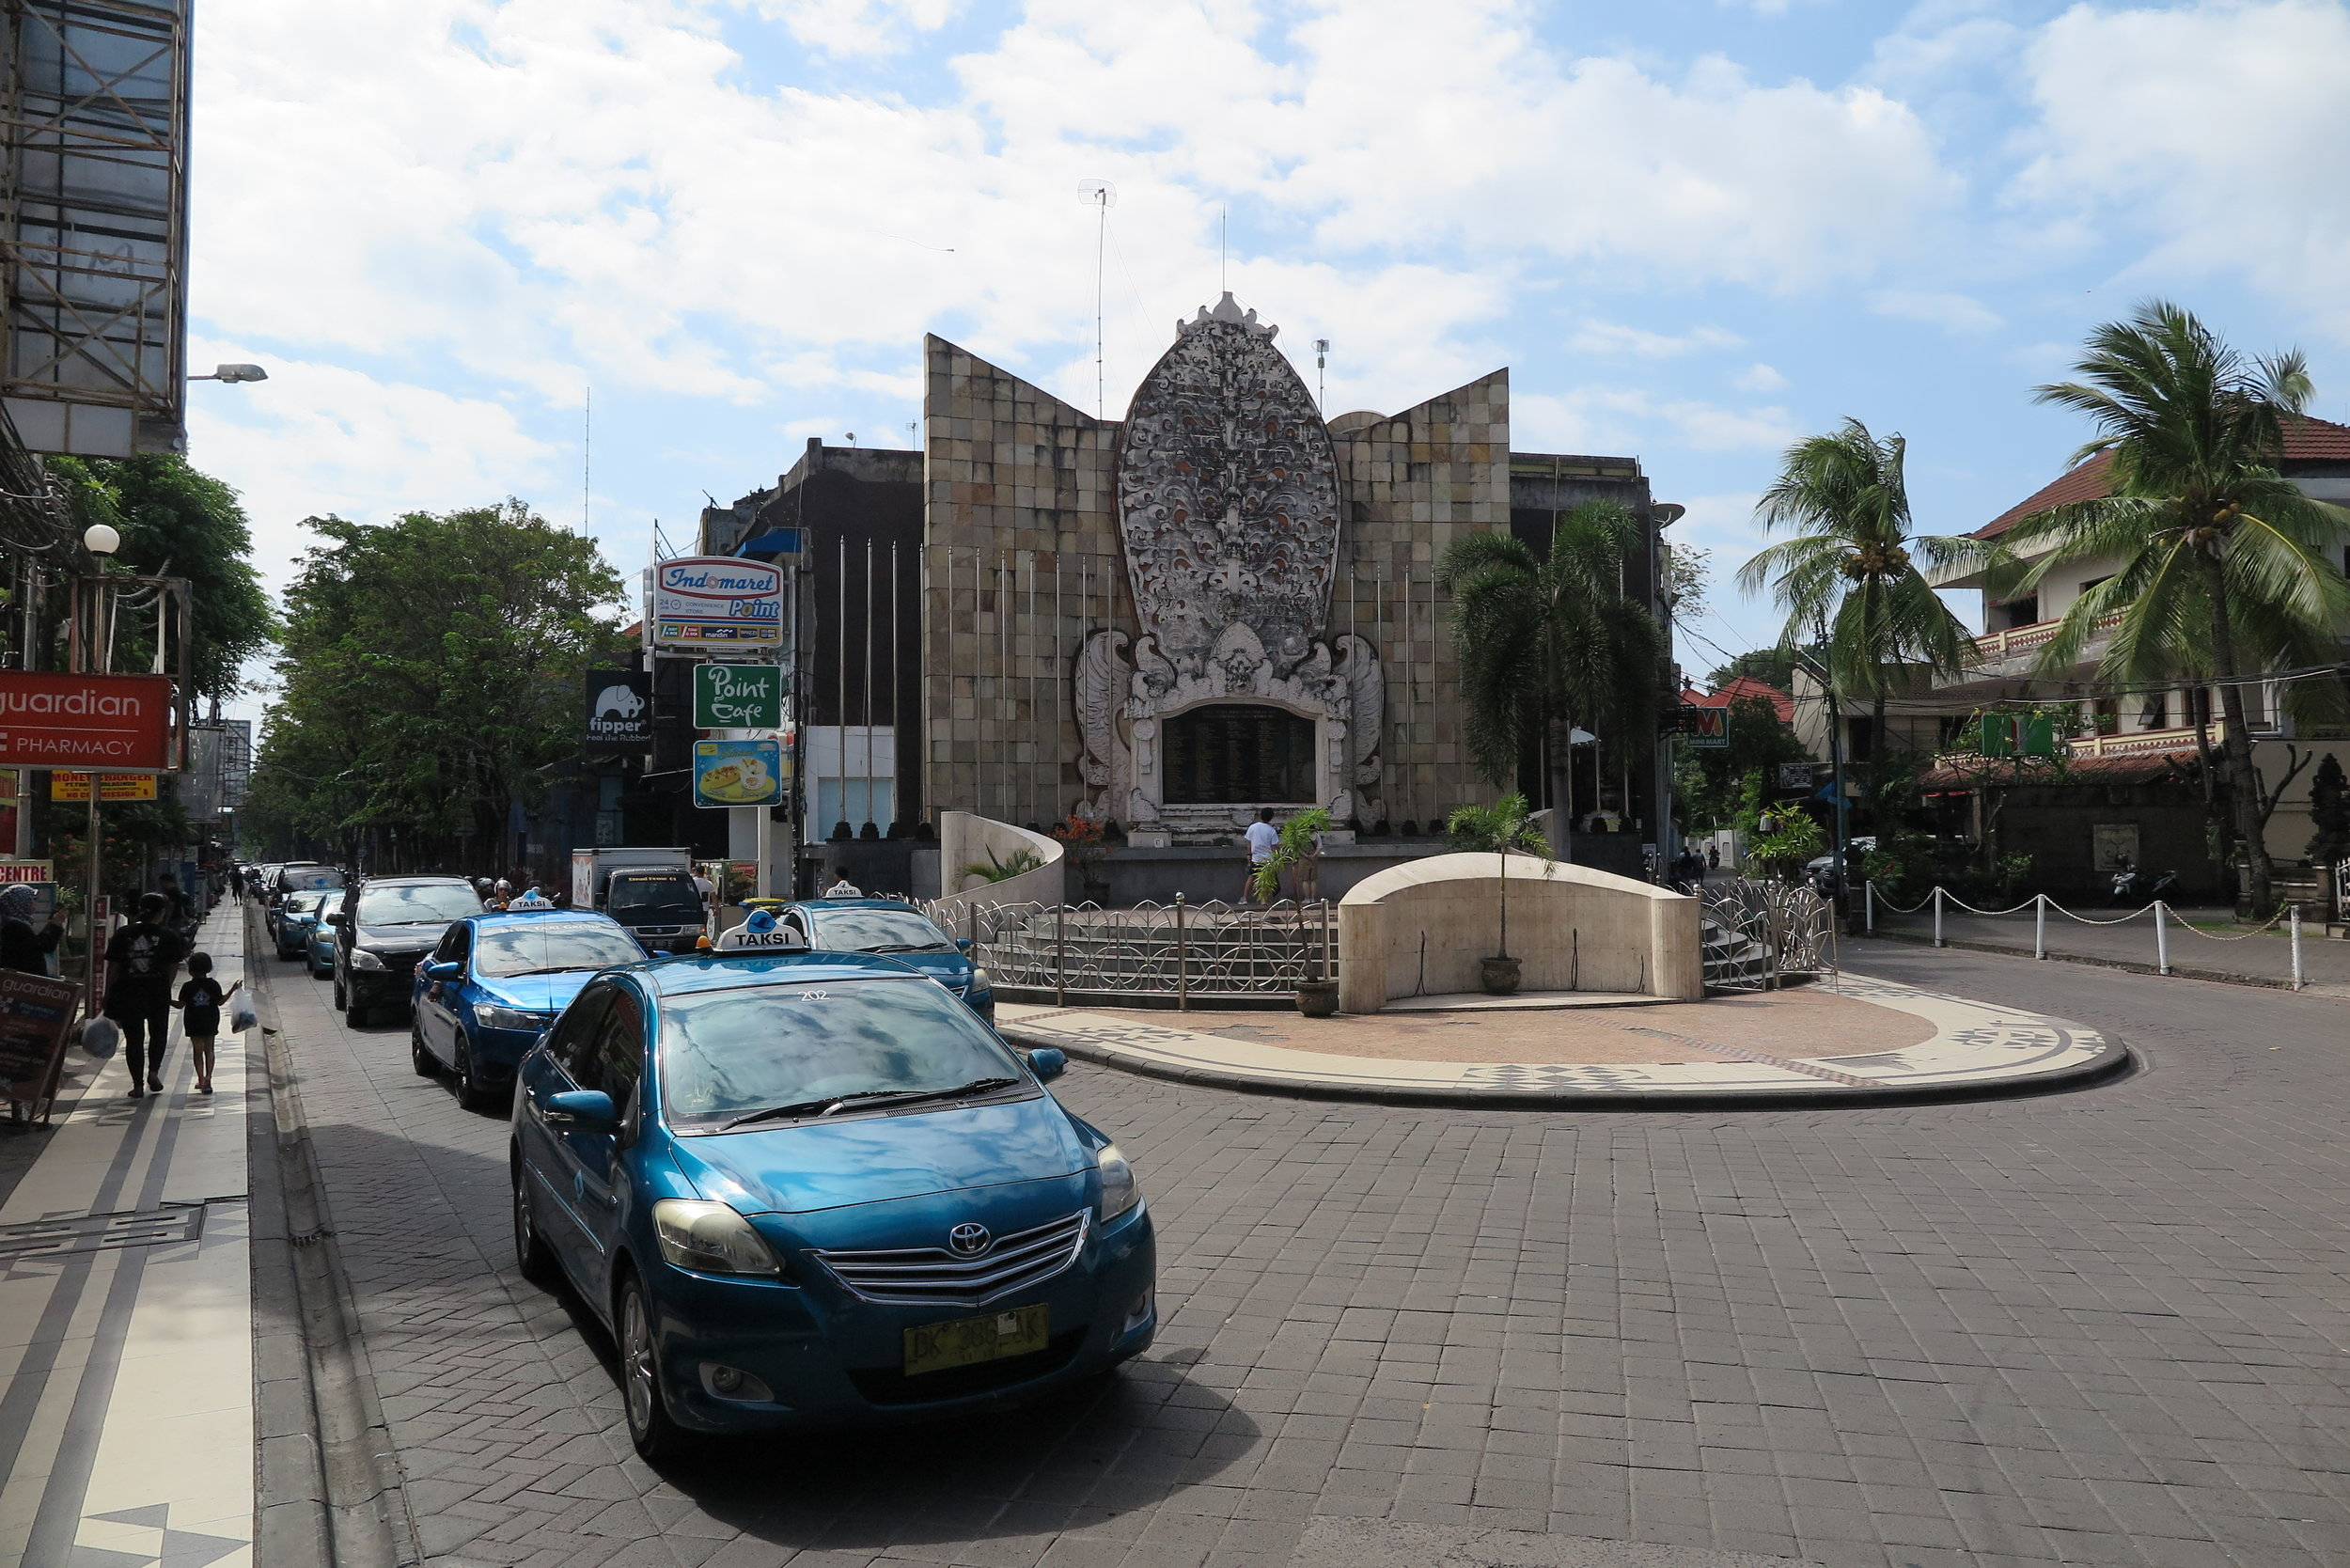 The memorial for the 2002 terrorist bombing incident near Kuta Beach with a plaque for the names of the people killed or injured.